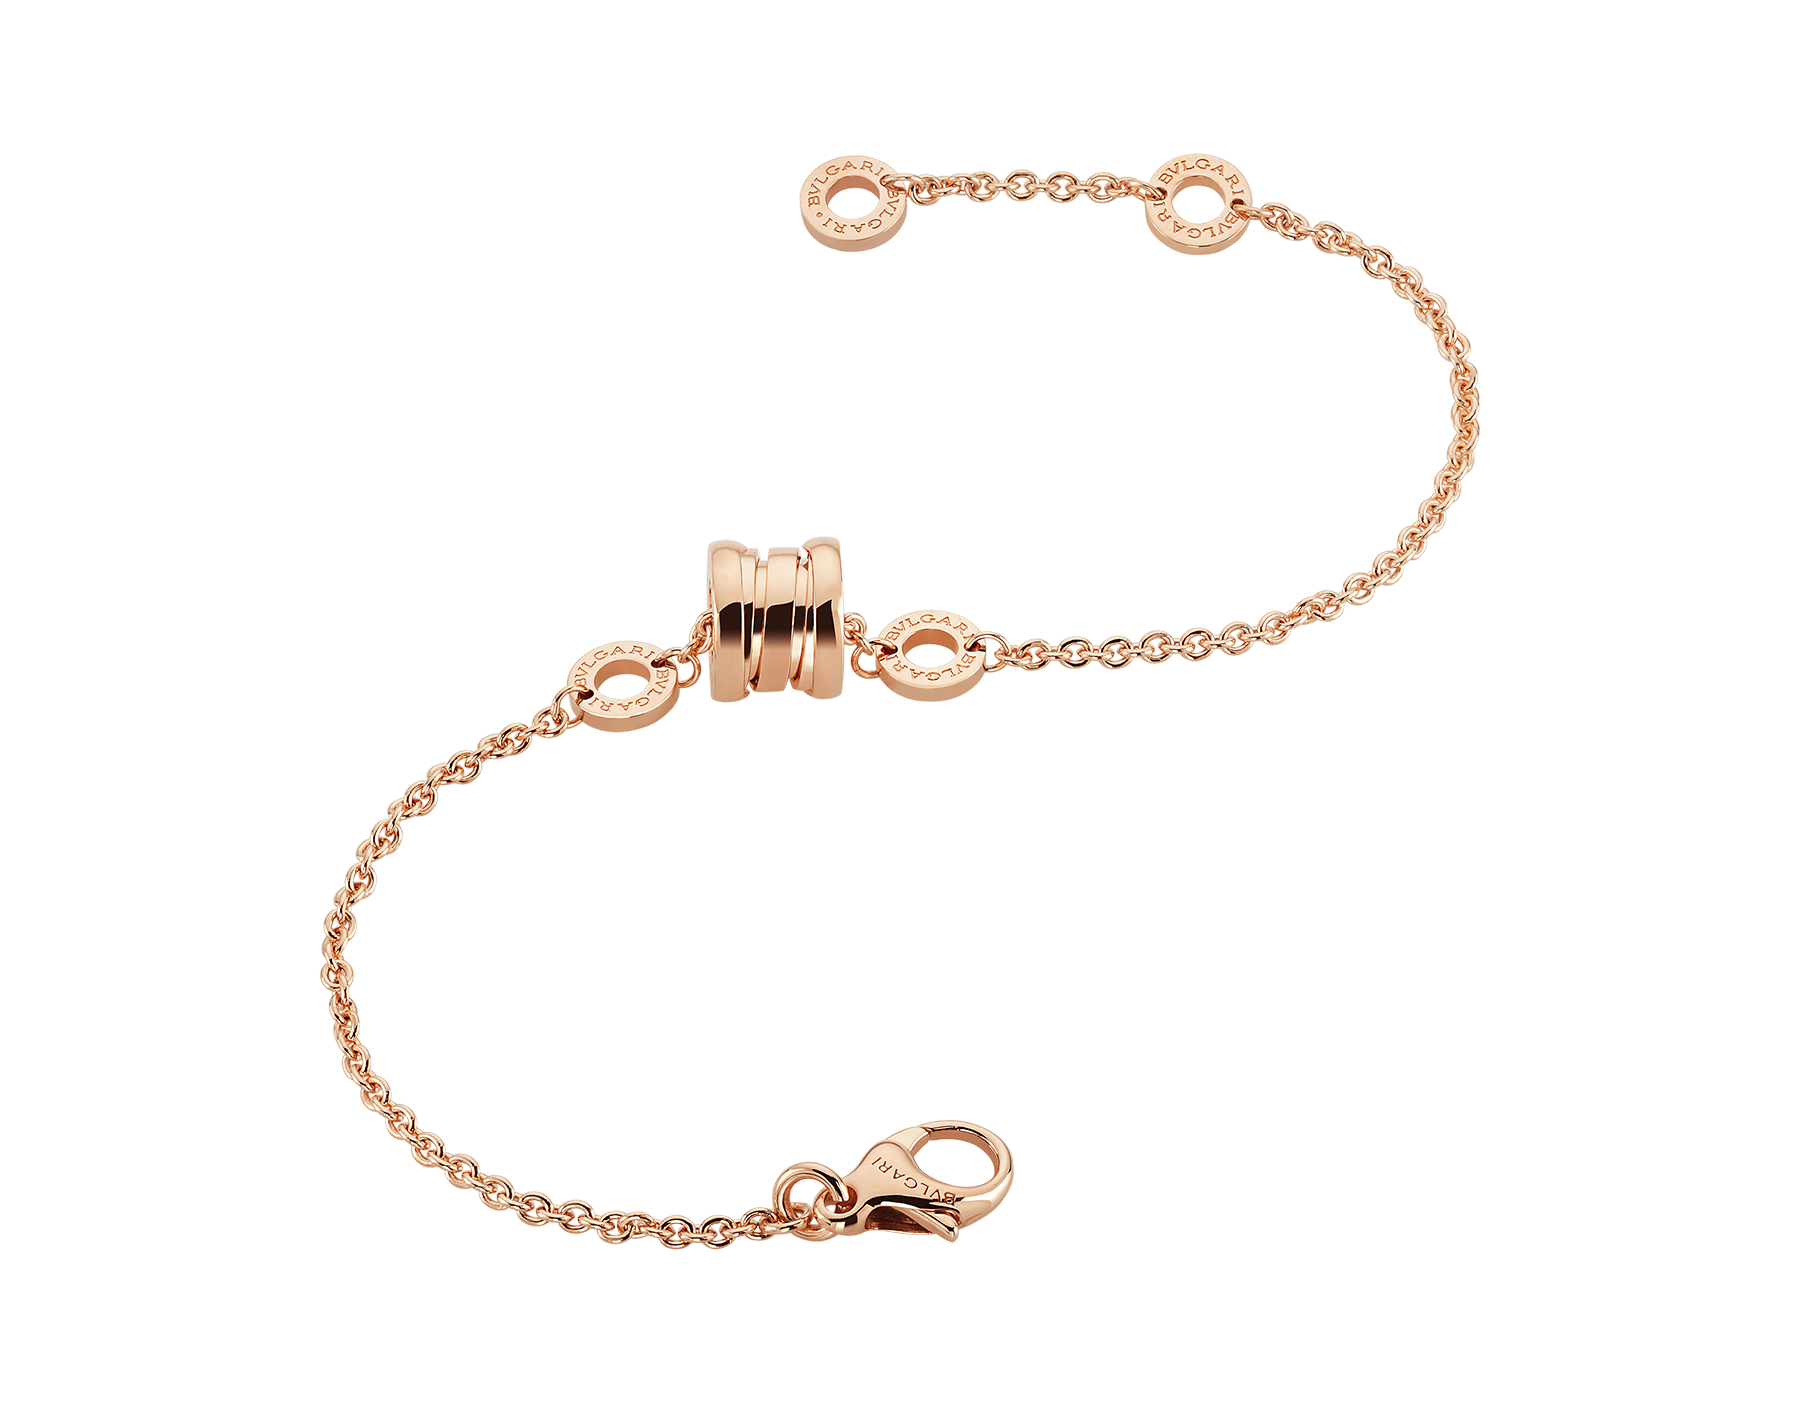 B.zero1 soft bracelet in 18 kt rose gold. BR857254 image 2